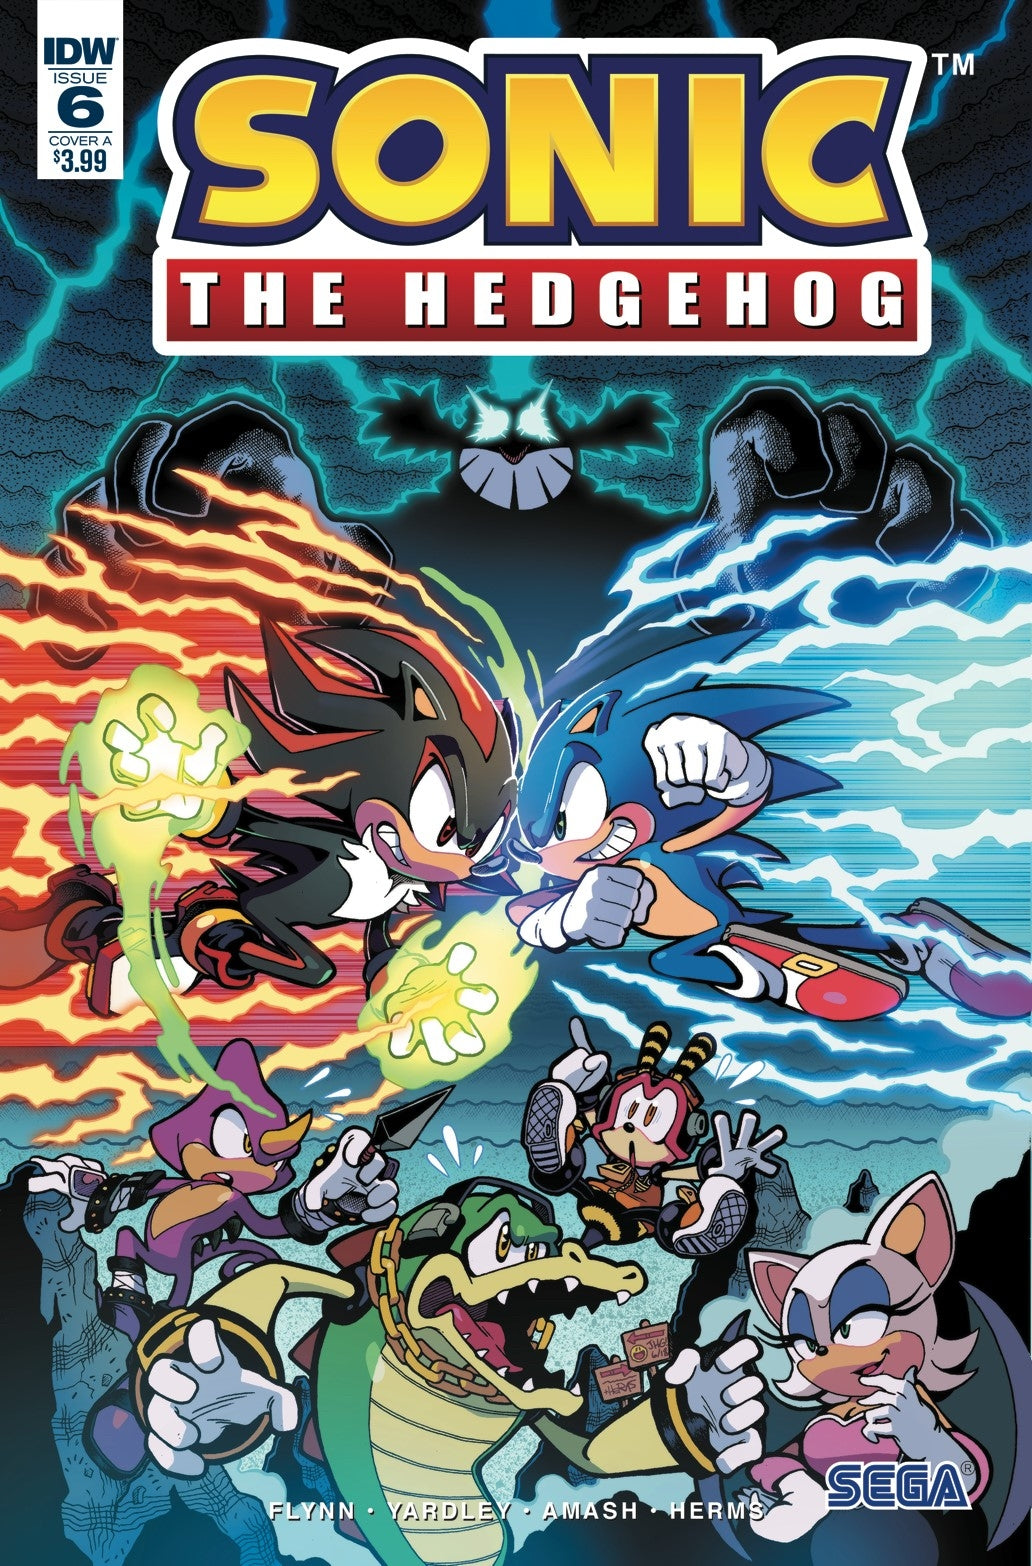 SONIC THE HEDGEHOG #6 CVR A YARDLEY